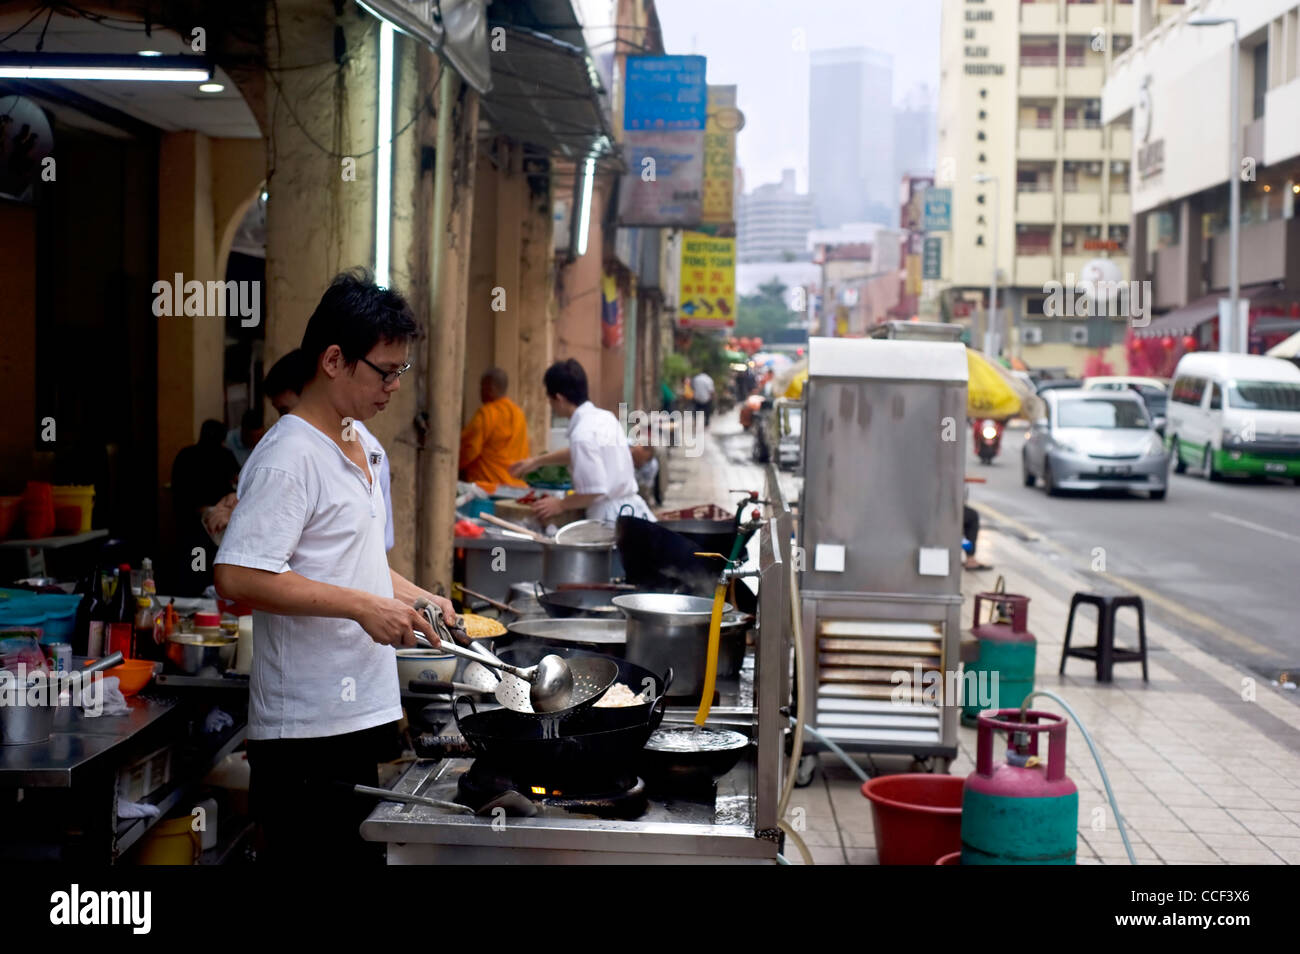 Local man cooking fast food on the street in Kuala Lumpur's Chinatown. KL Chinatown is a popular tourist attraction - Stock Image